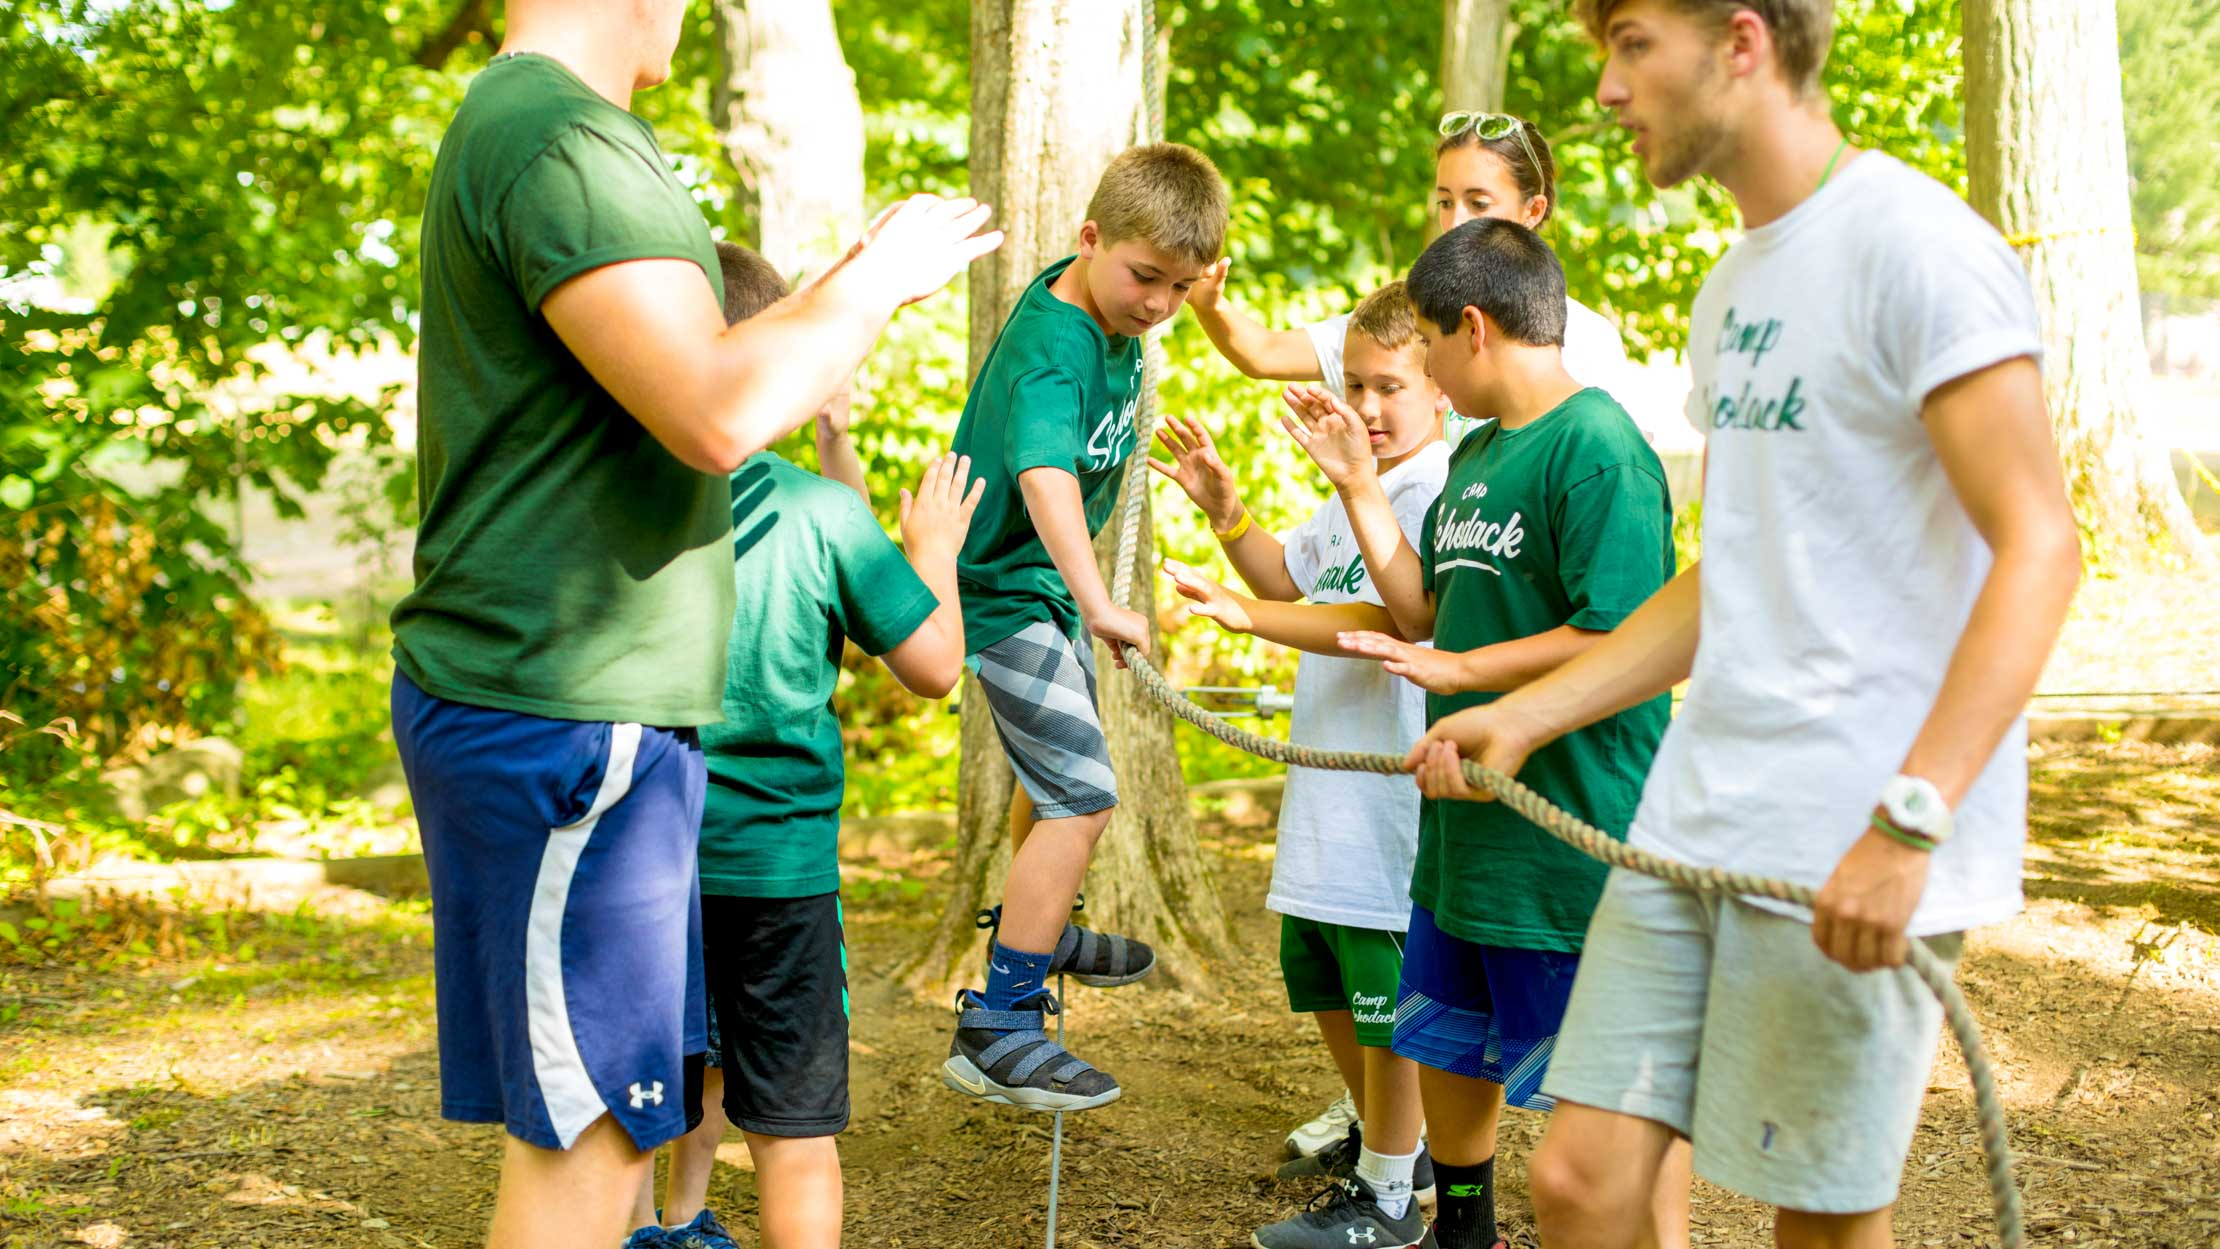 Boys cross low ropes course at summer camp